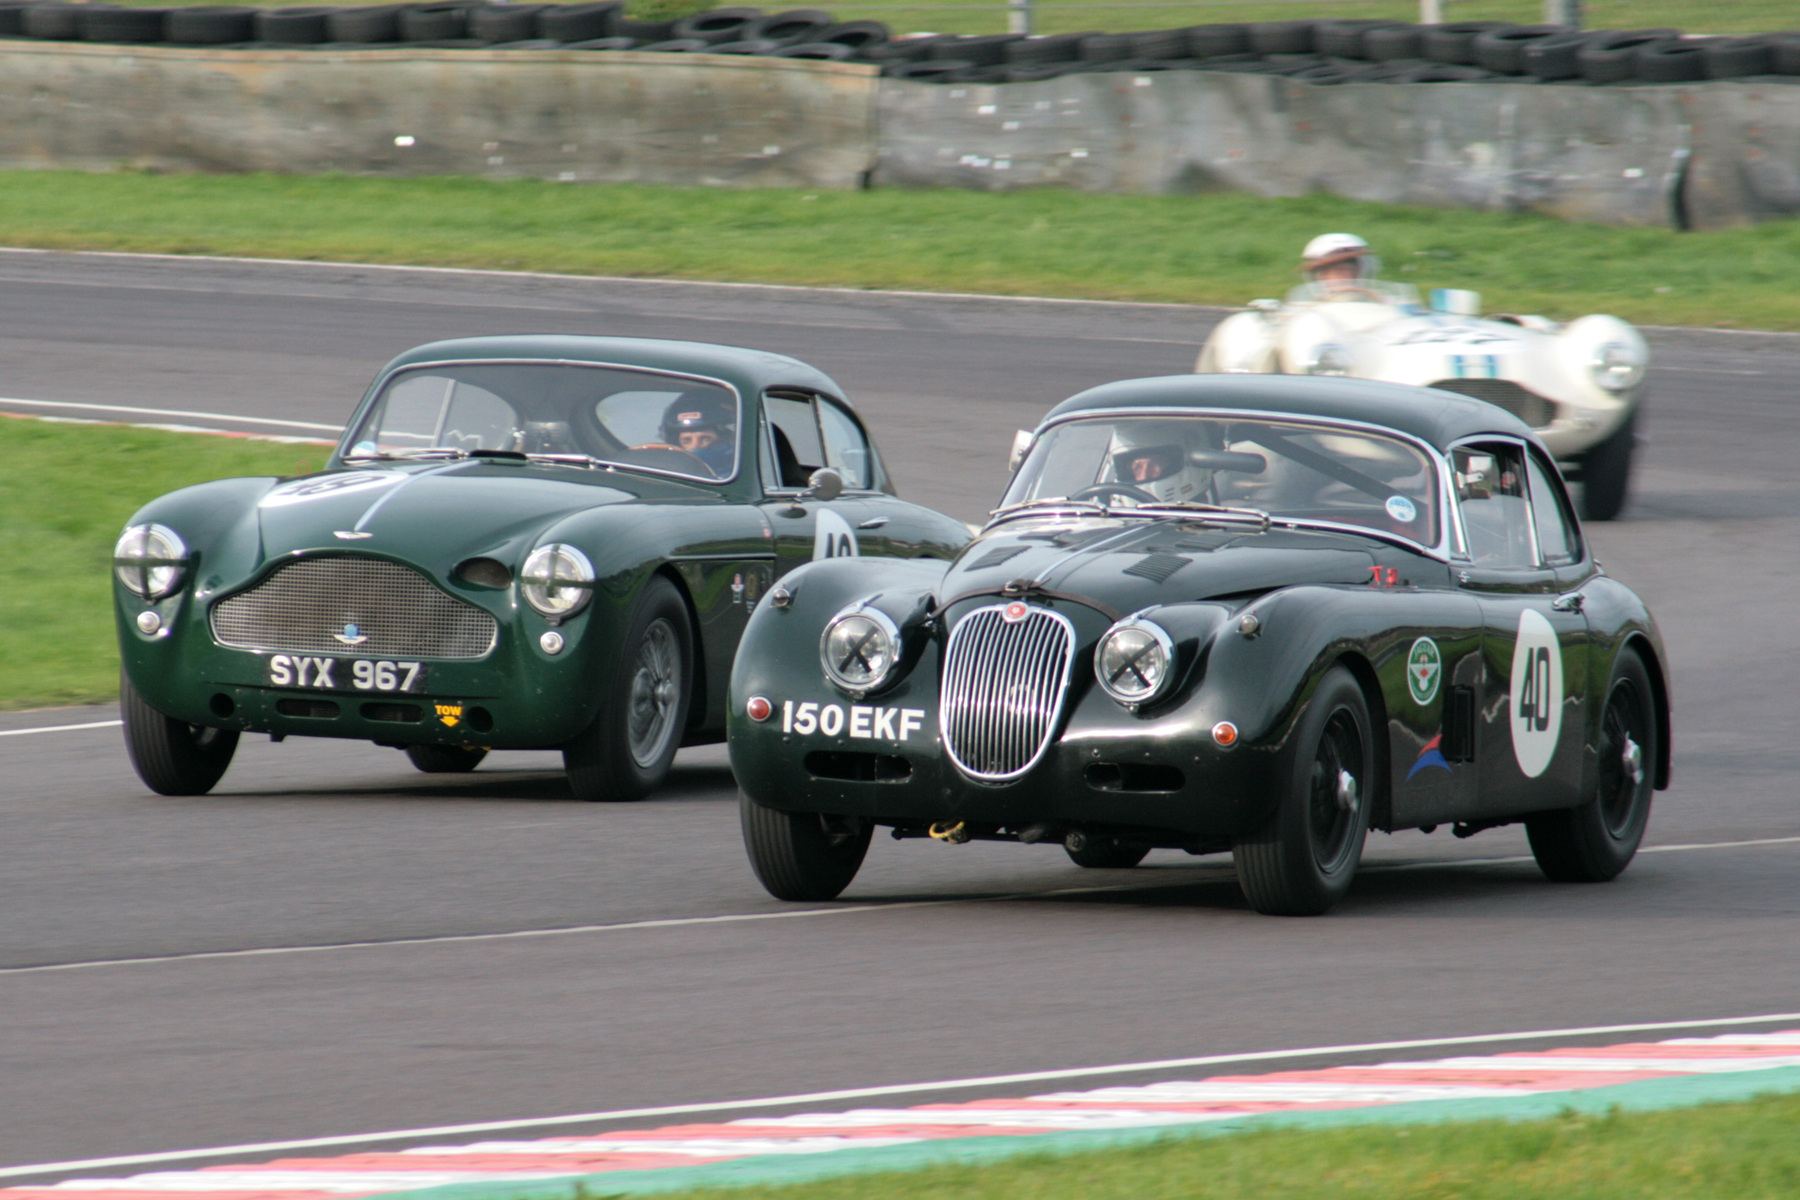 British Racing Green heavy metal. Bruce Chambers in his first outing with us in the Gross family Aston Martin DB MkIII and sharing with Chris Woodgate (22nd) and Claire Keith- Lucas in the Jaguar XK150 (DNF). Both cars represent the last of their line. Classic iconic cars in their own right, they were each replaced by true Icons of the 20th century, the DB4 and E type!  Photo - John Turner